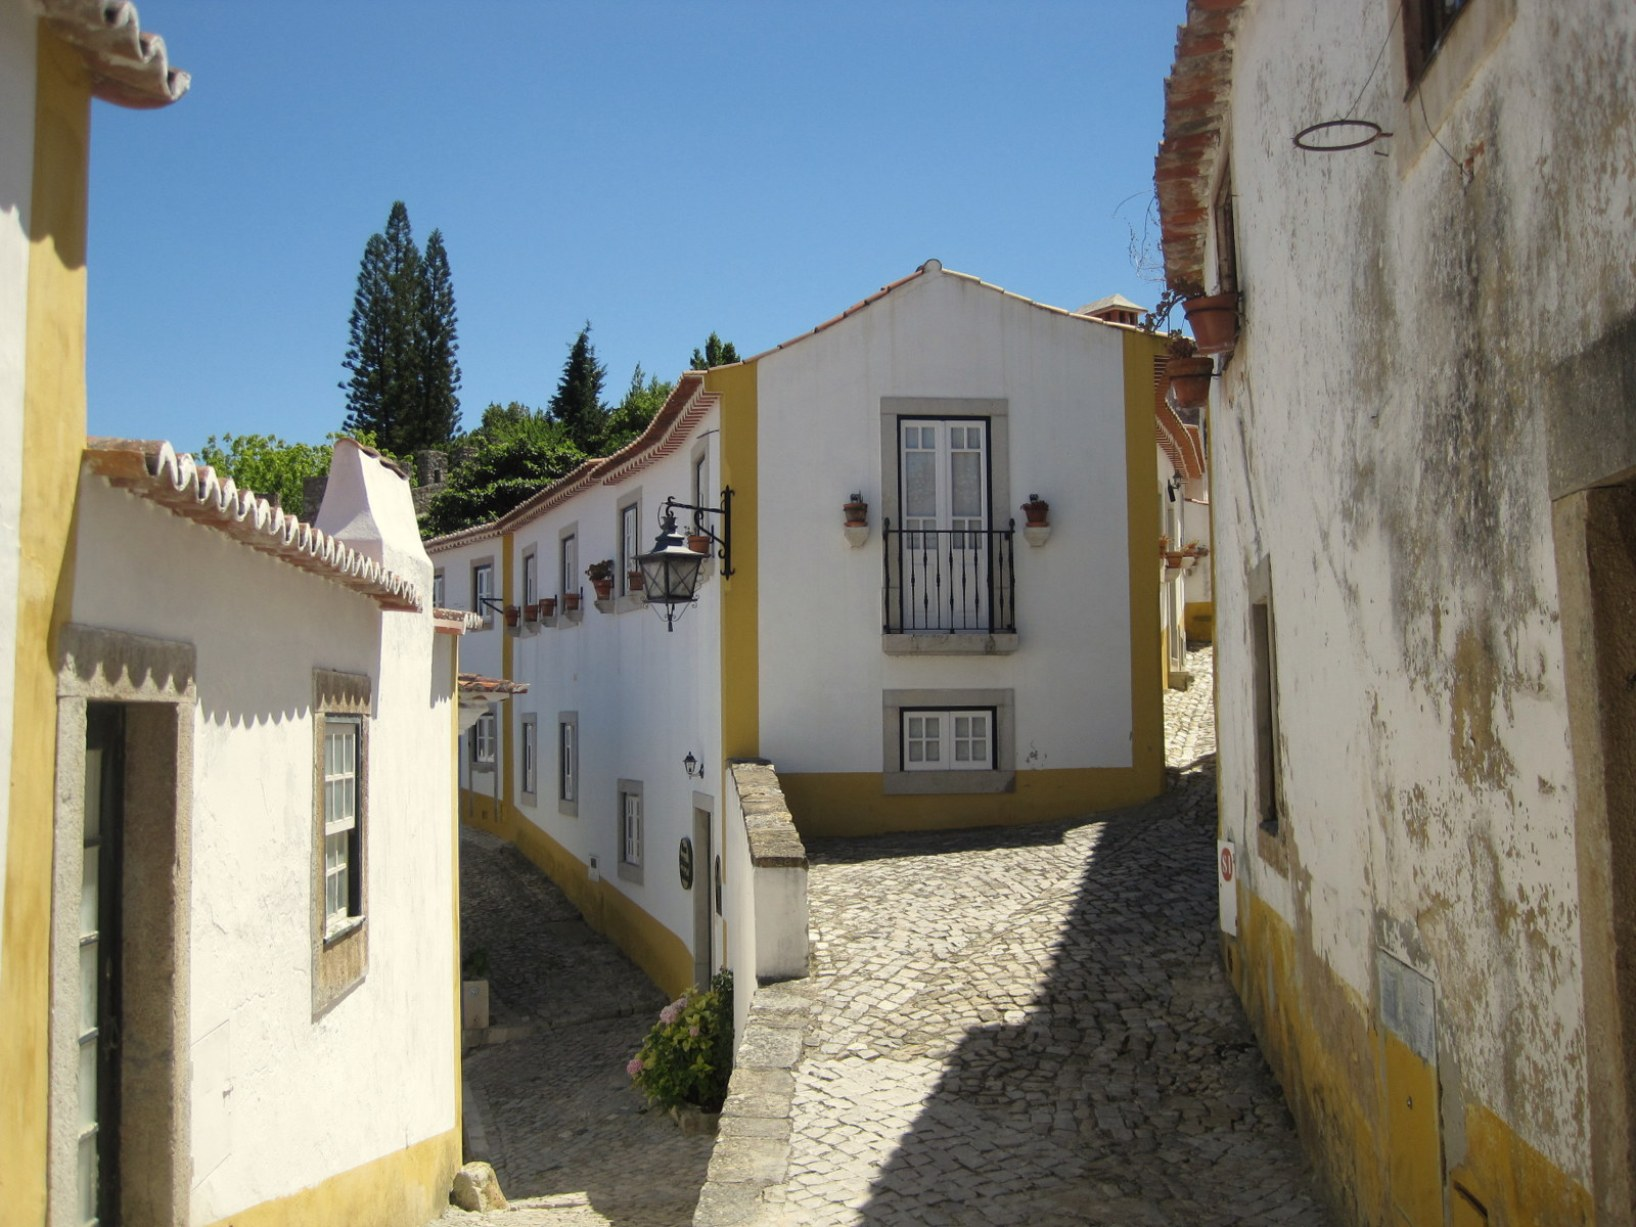 7 places to visit in Portugal - Obidos - A medieval town on a hillside, Obidos is simply breathtaking. Walk the old city walls and get views over the village. Wander the streets and see the charming shops and houses covered in flowering vines.